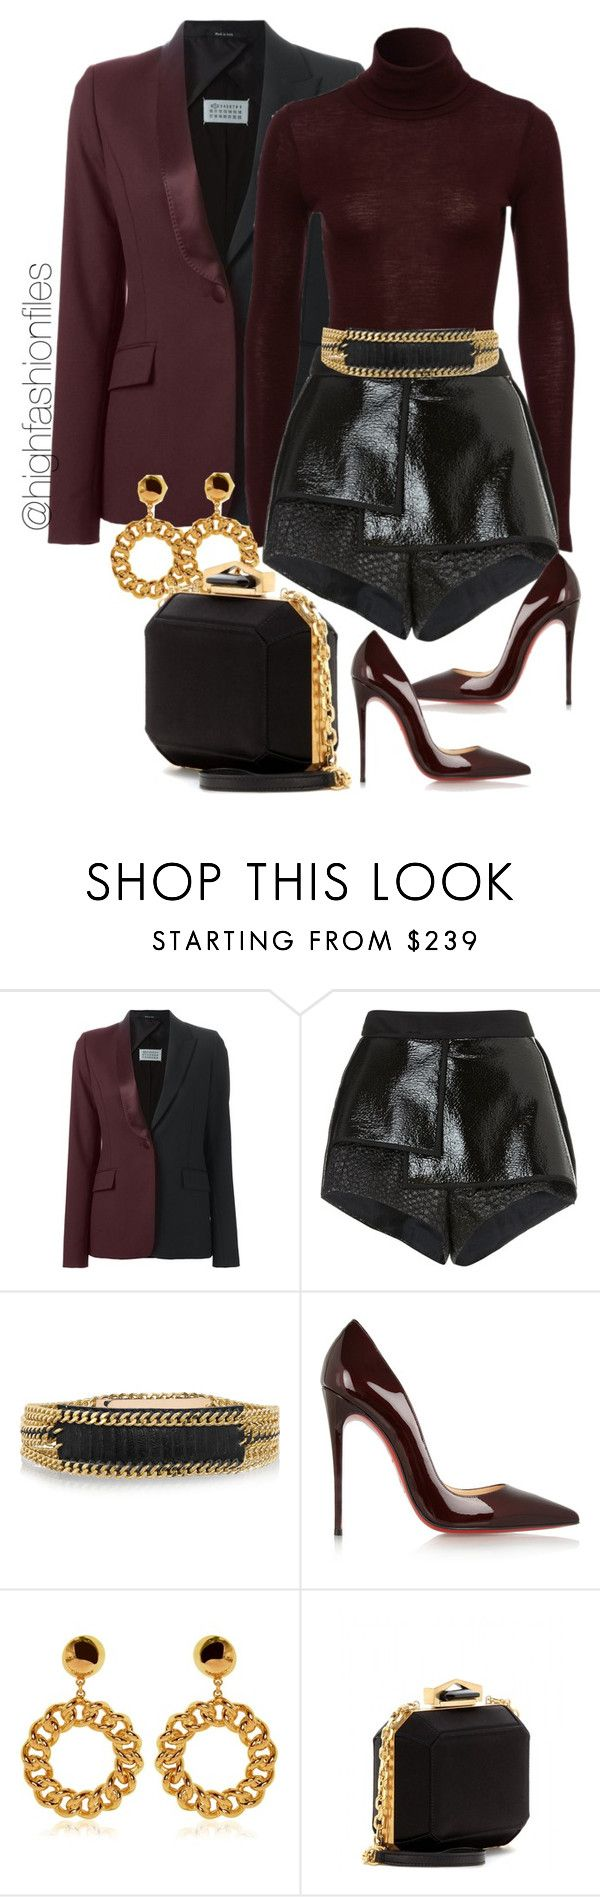 """Switching Up"" by highfashionfiles ❤ liked on Polyvore featuring Maison Margiela, E L L E R Y, Balmain, Christian Louboutin, Moschino and Alexander McQueen"